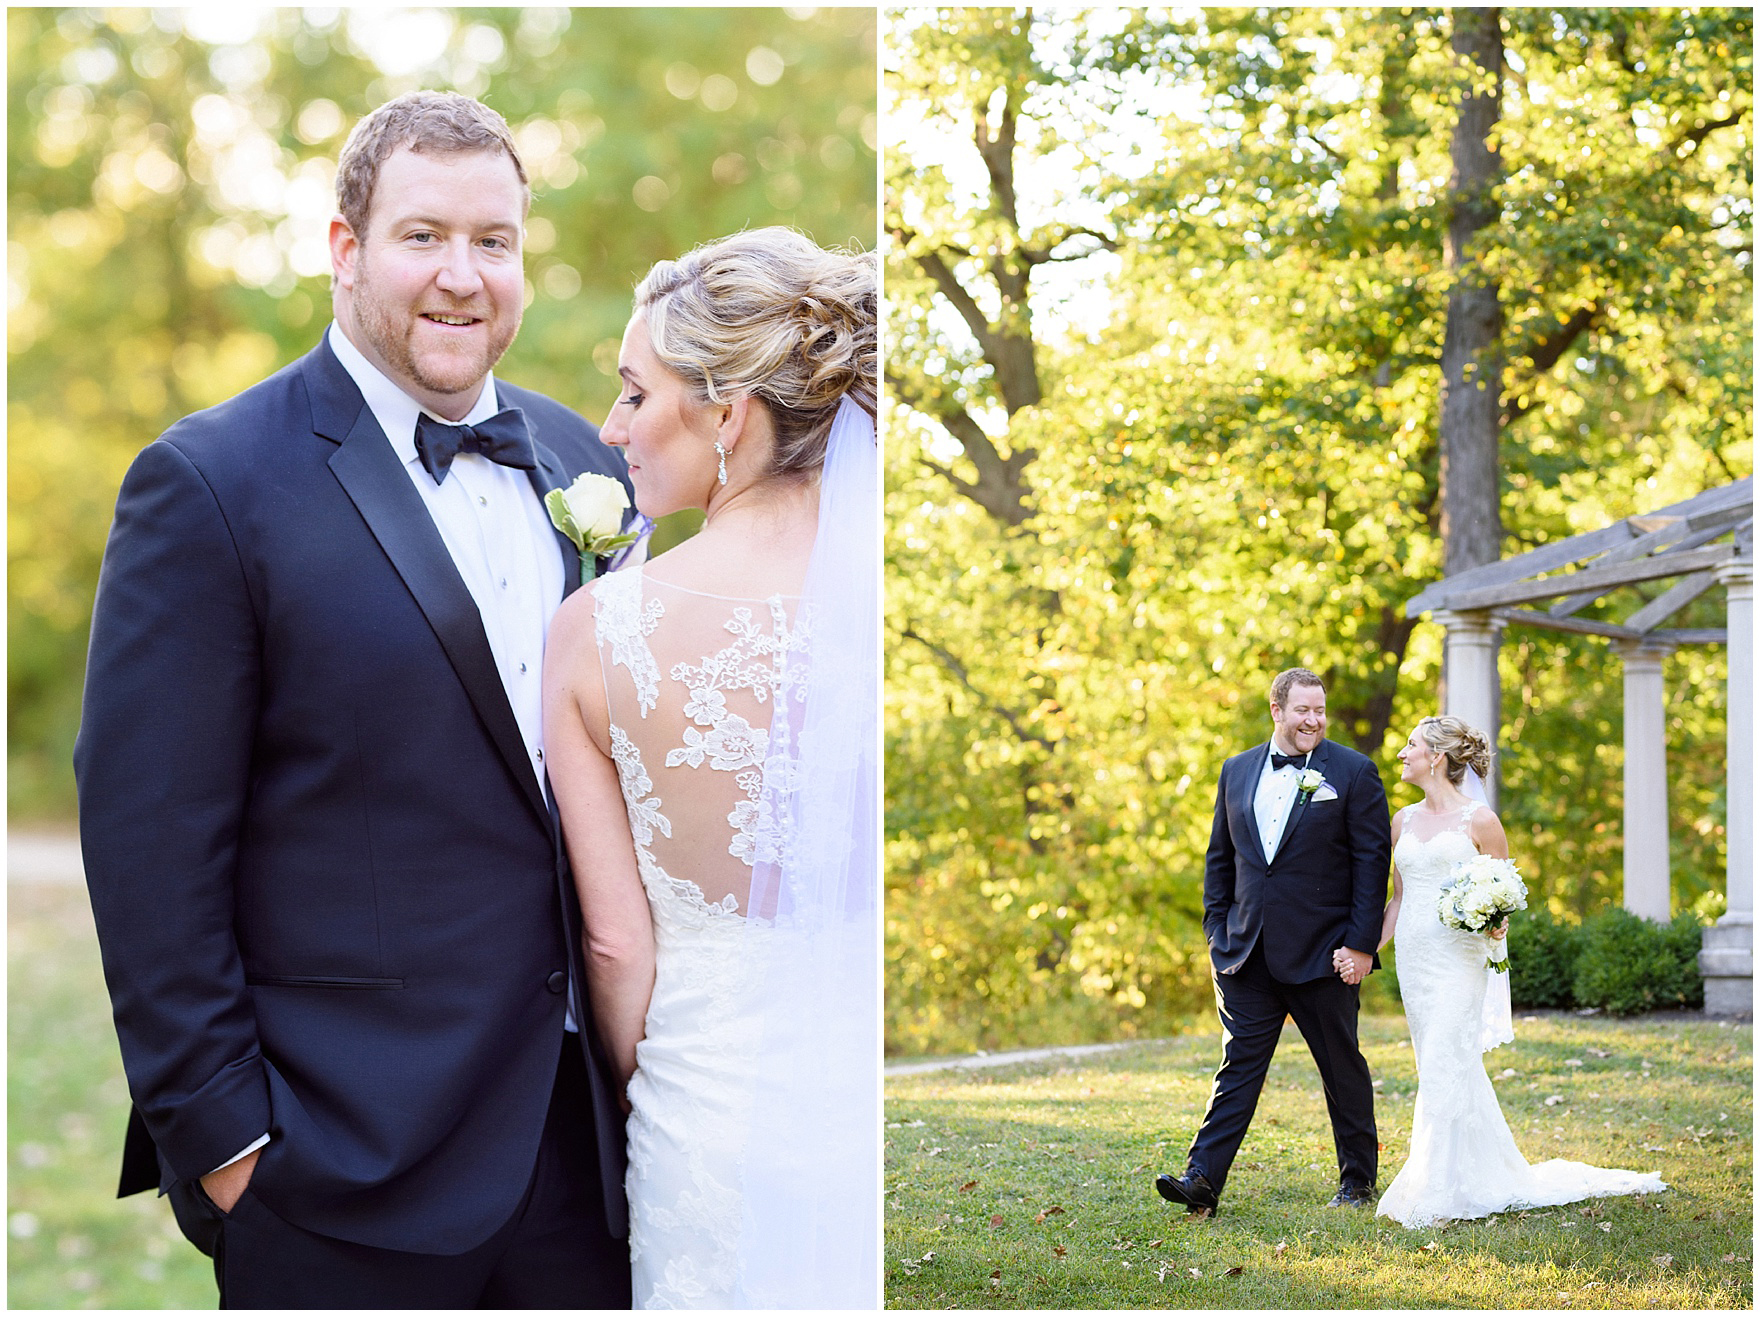 The bride and groom pose for portraits during a Glen Club Glenview Illinois wedding.